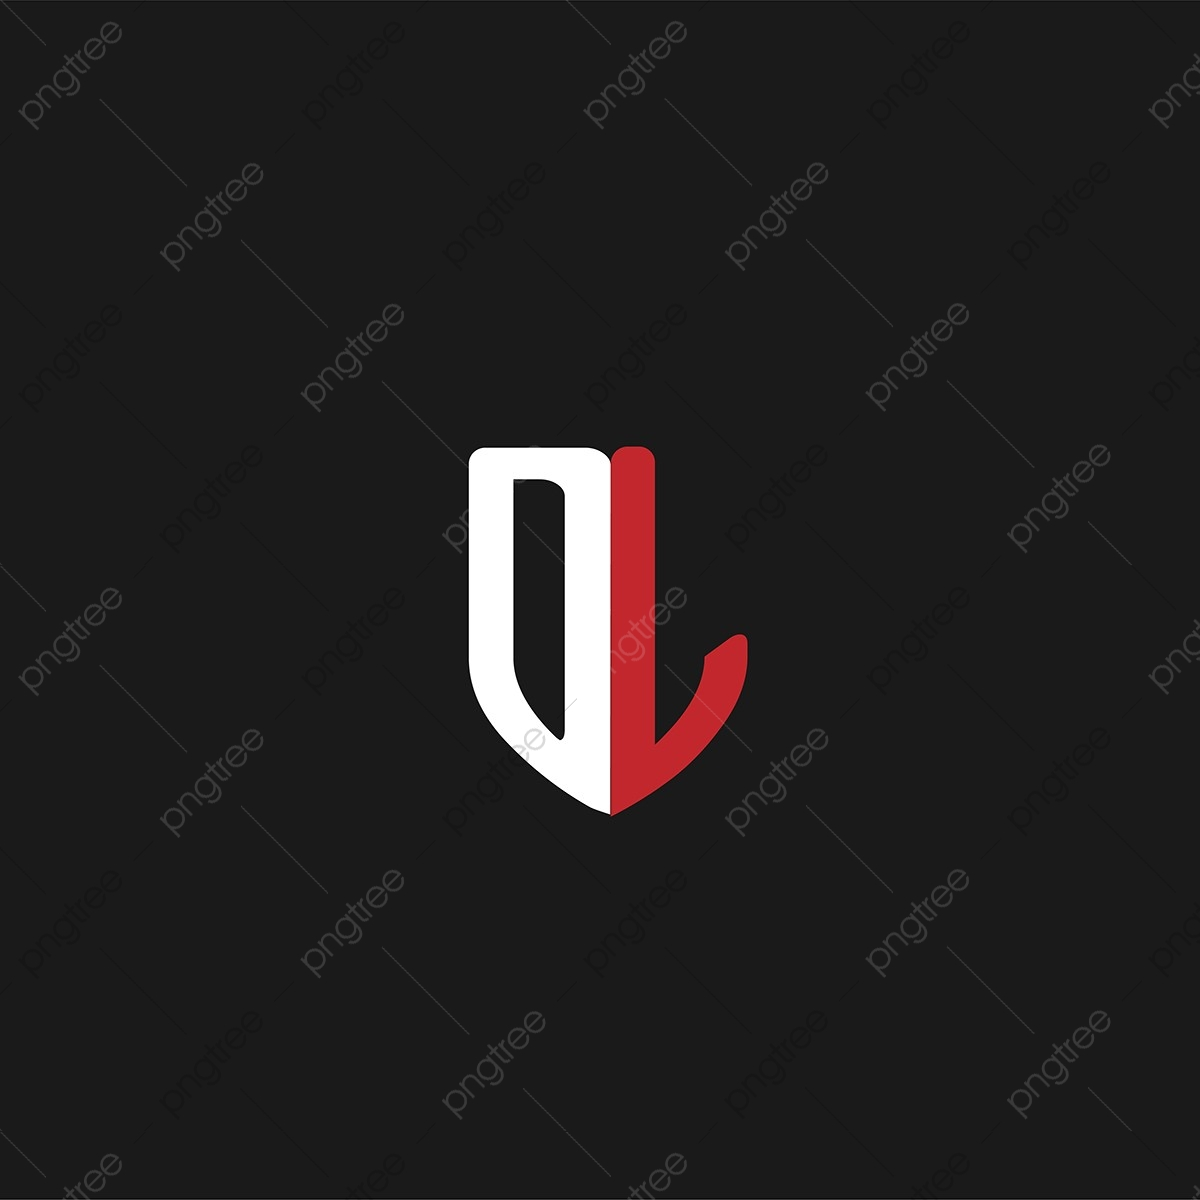 Initial Letter Dl Logo Design Template For Free Download On Pngtree